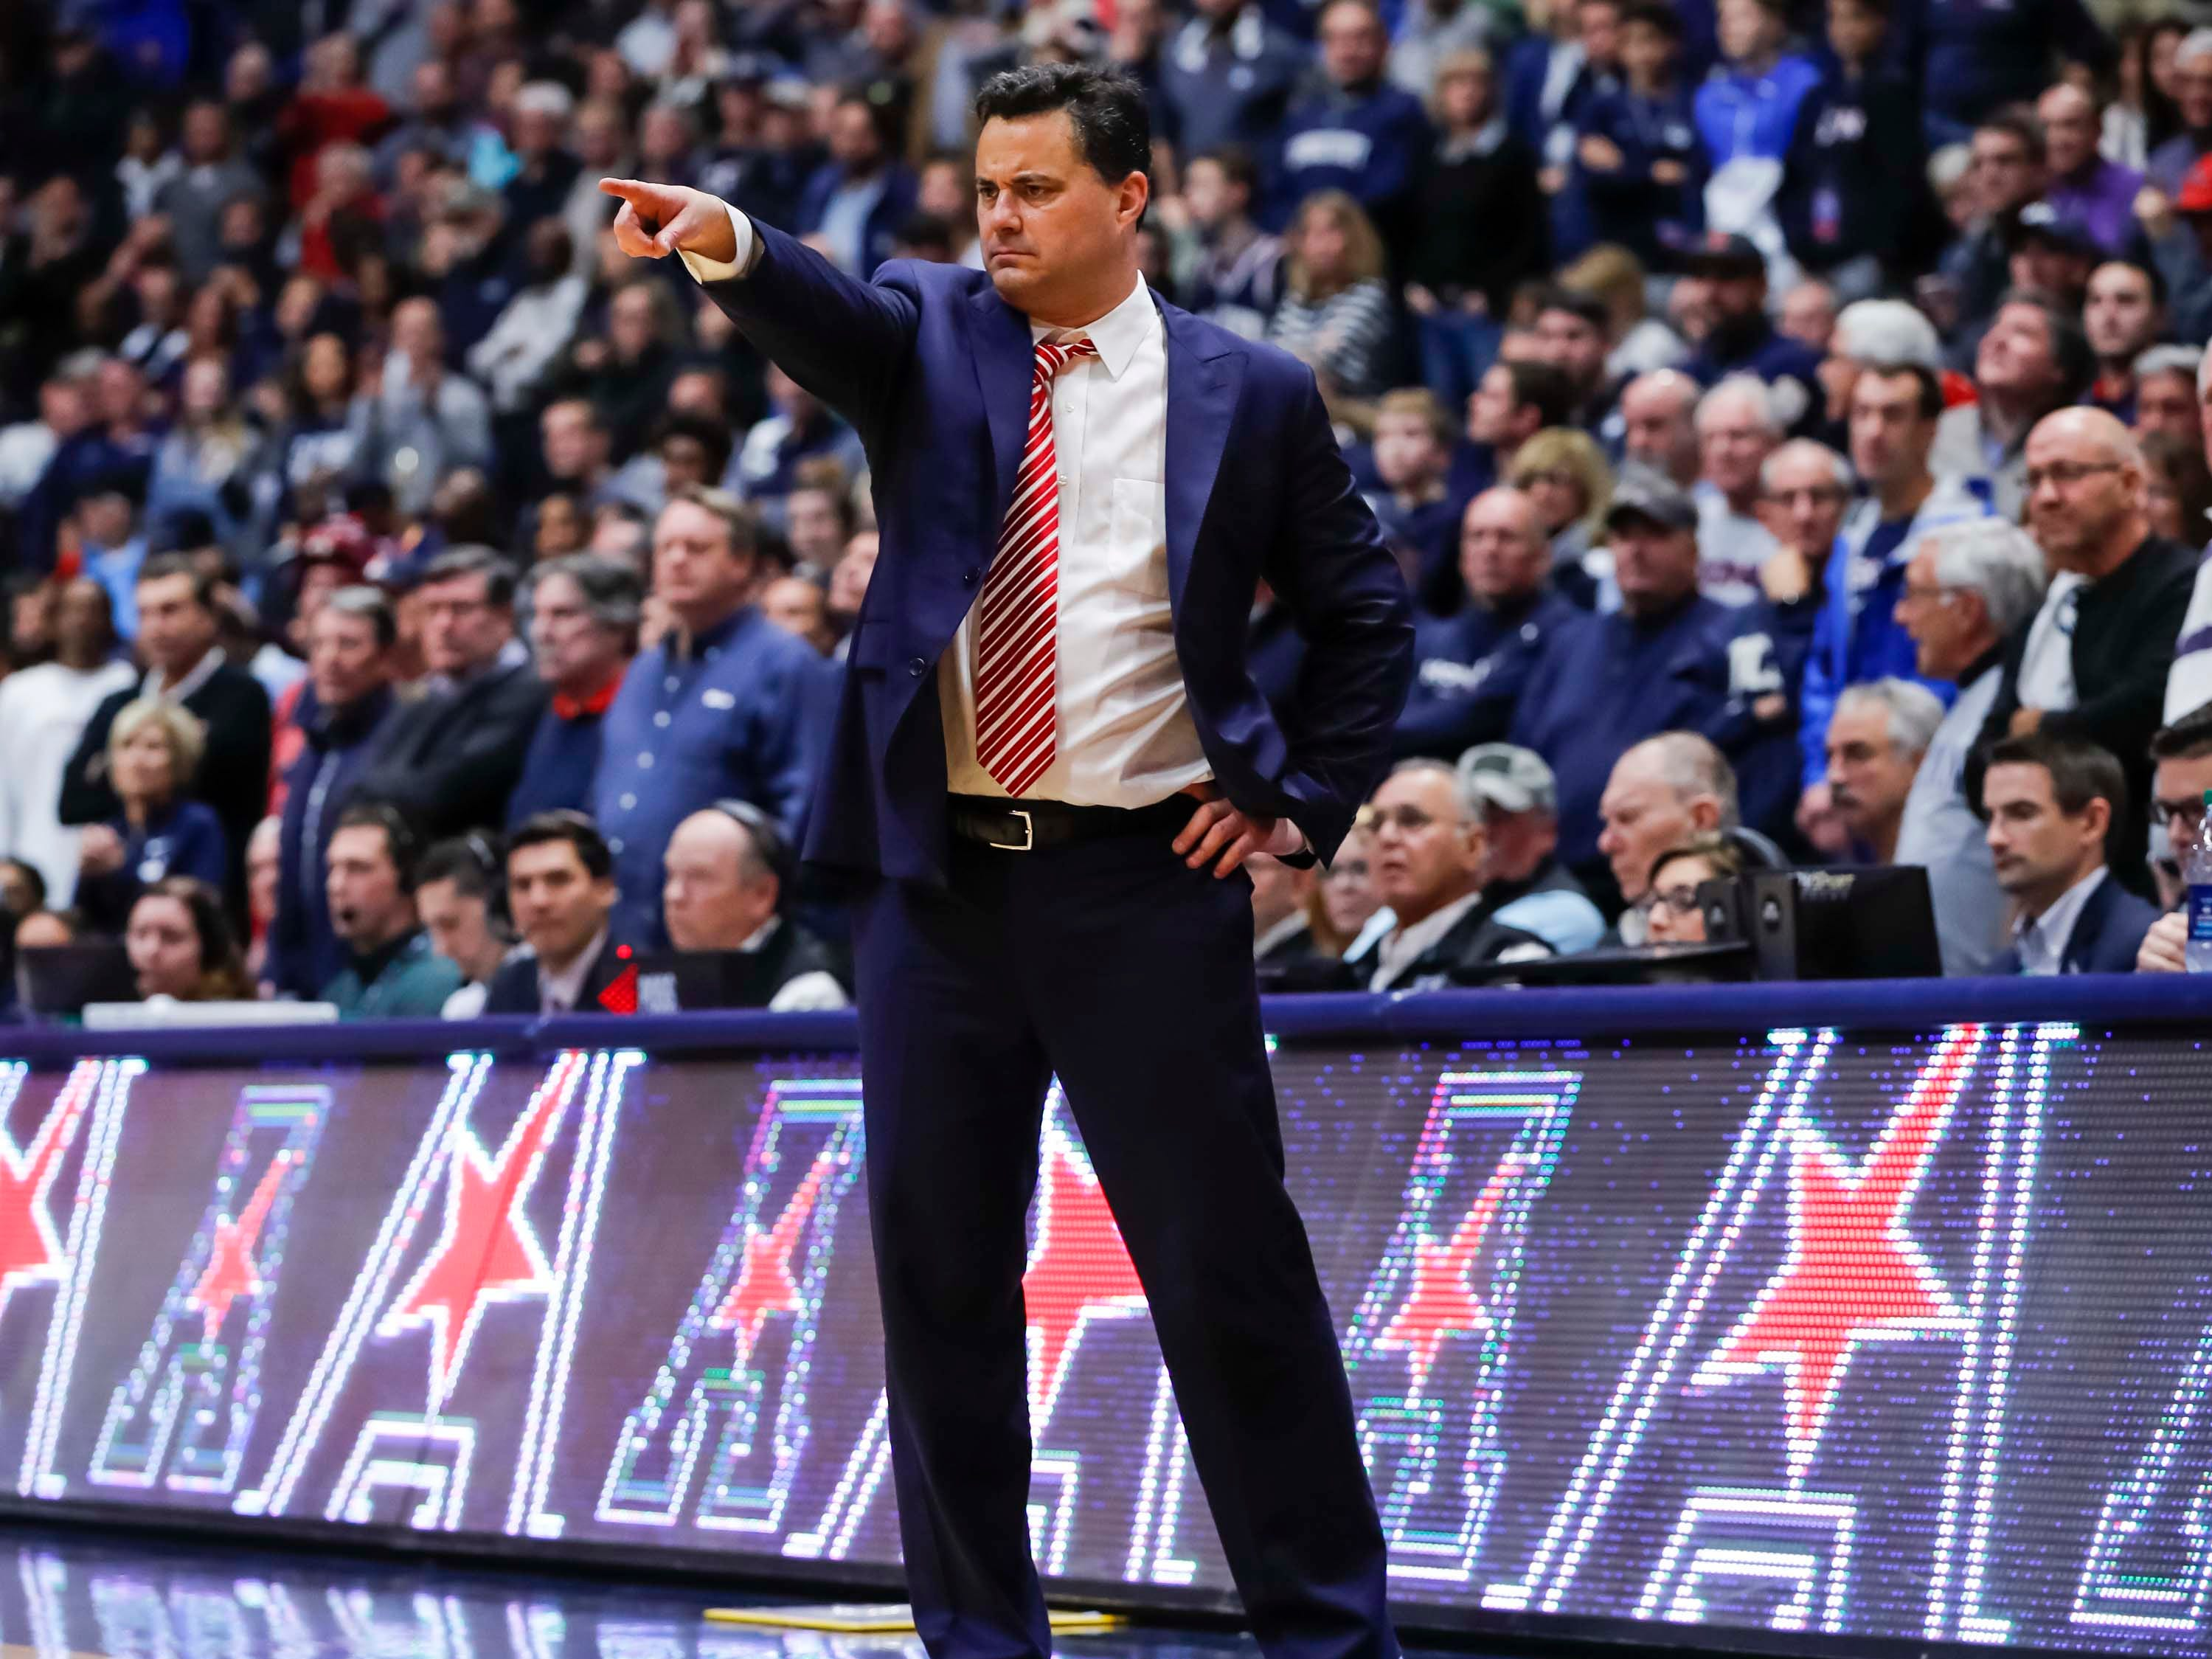 Dec 2, 2018; Storrs, CT, USA; Arizona Wildcats head coach Sean Miller watches from the sideline as they take on the Connecticut Huskies in the second half at XL Center. Arizona defeated UConn 76-72. Mandatory Credit: David Butler II-USA TODAY Sports